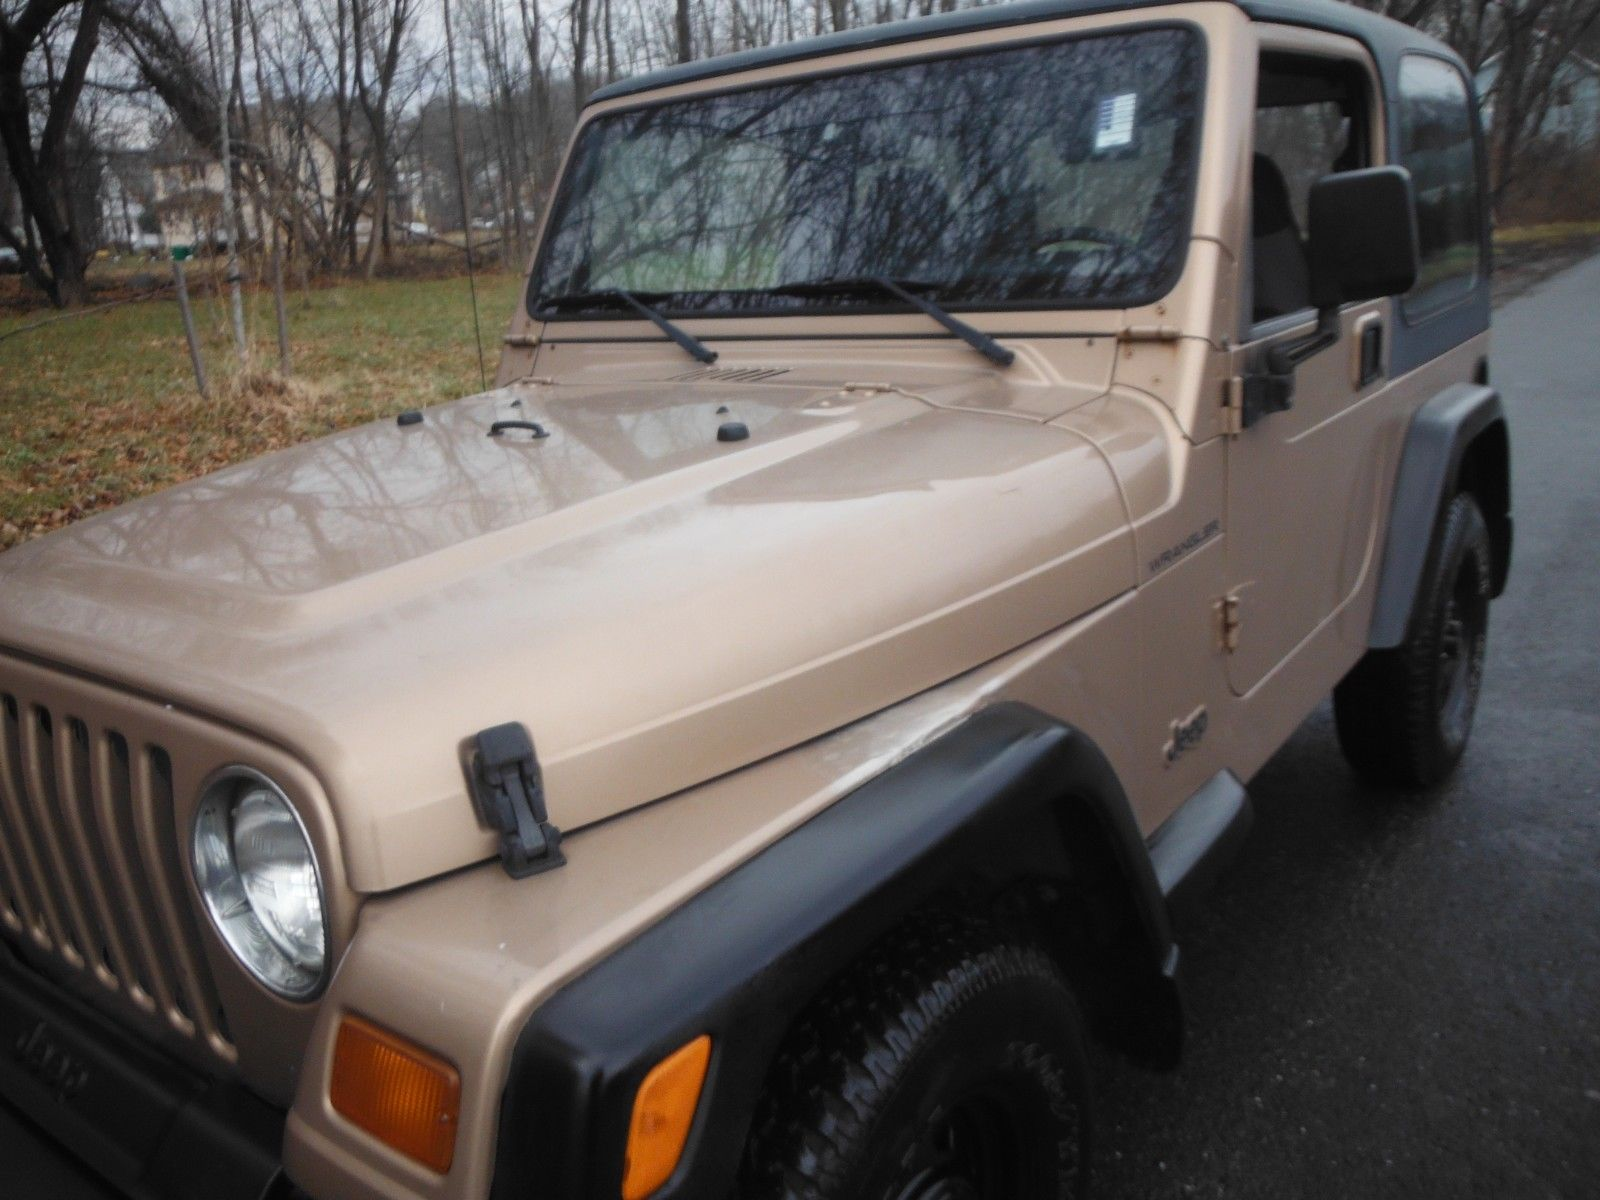 hight resolution of awesome 1999 jeep wrangler 4 4 tj 5 speed 1999 jeep wrangler 4 x 4 hard top 5 speed 2 5 liter 4 cylinder engine 2018 2019